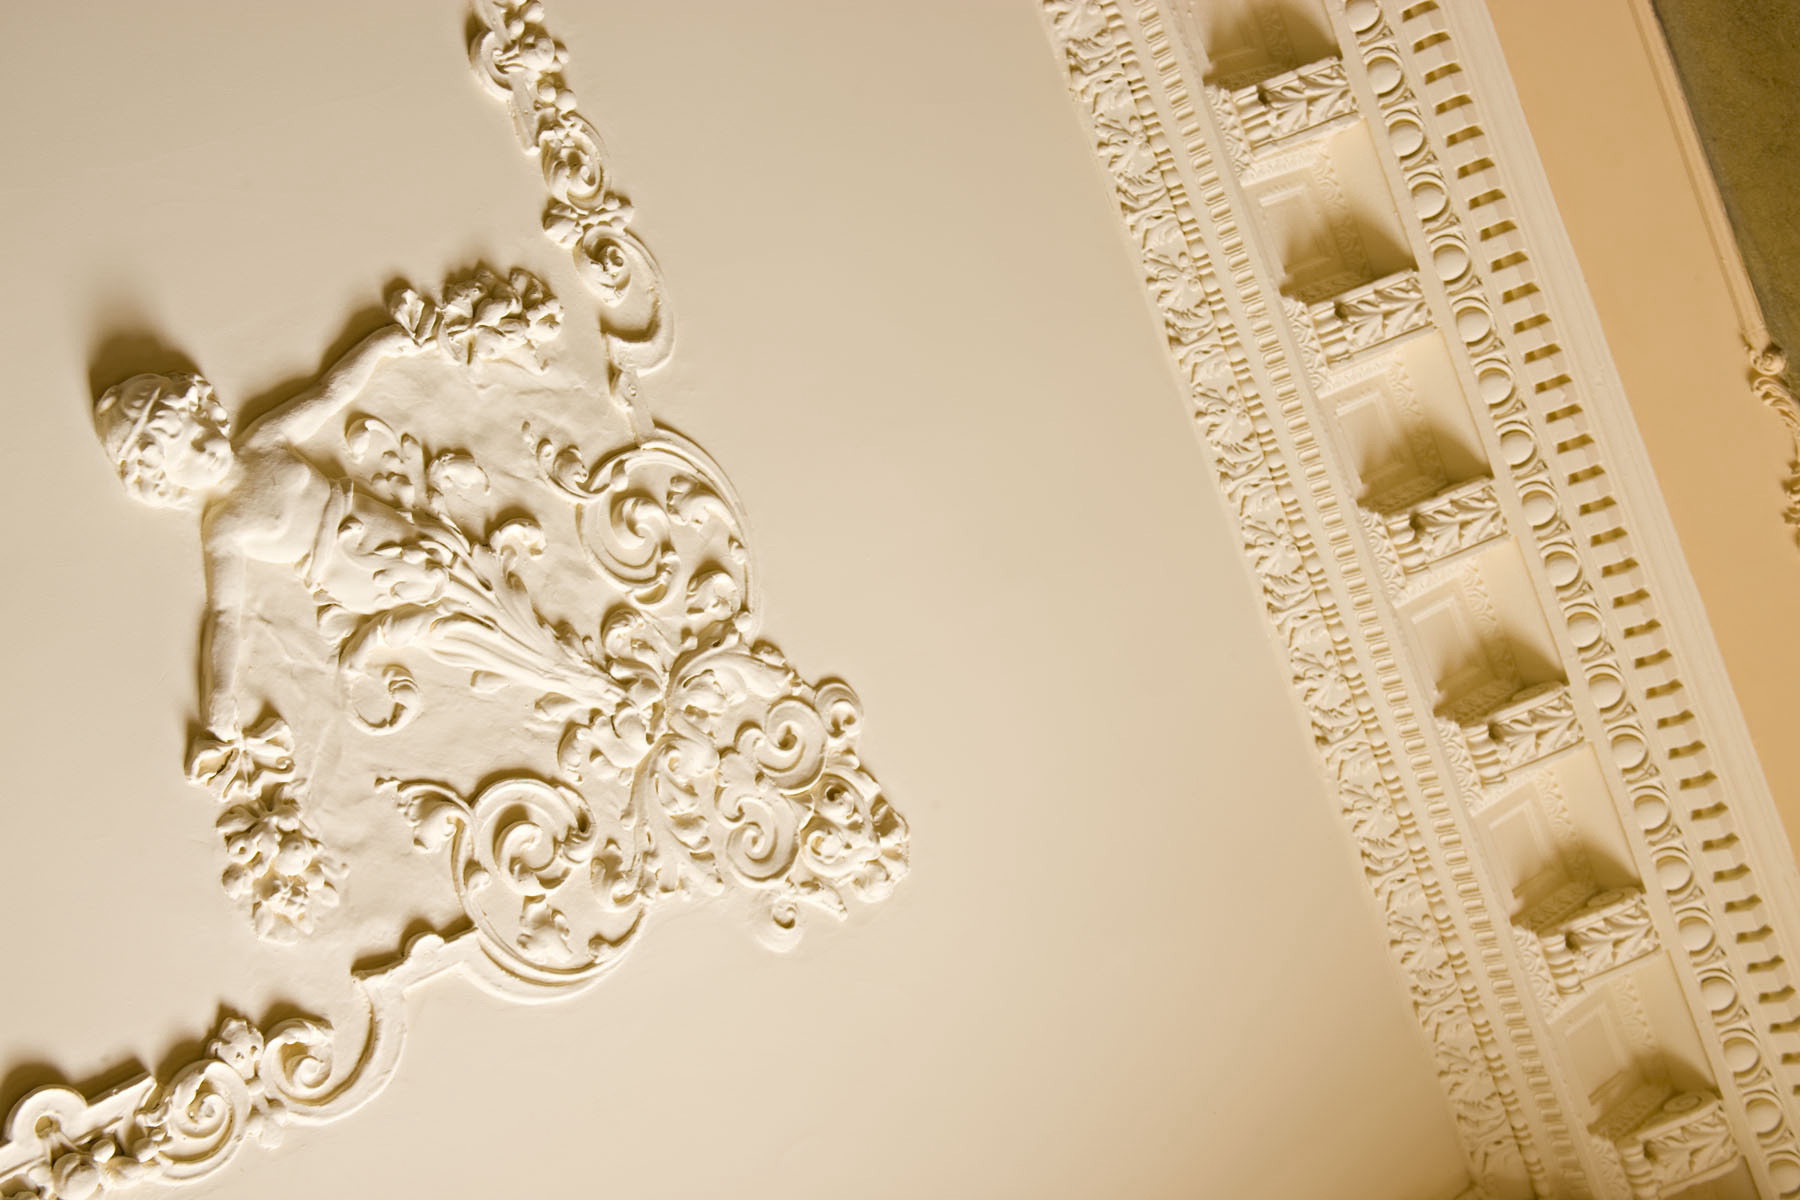 Image 5, Ornate Plaster Ceilings